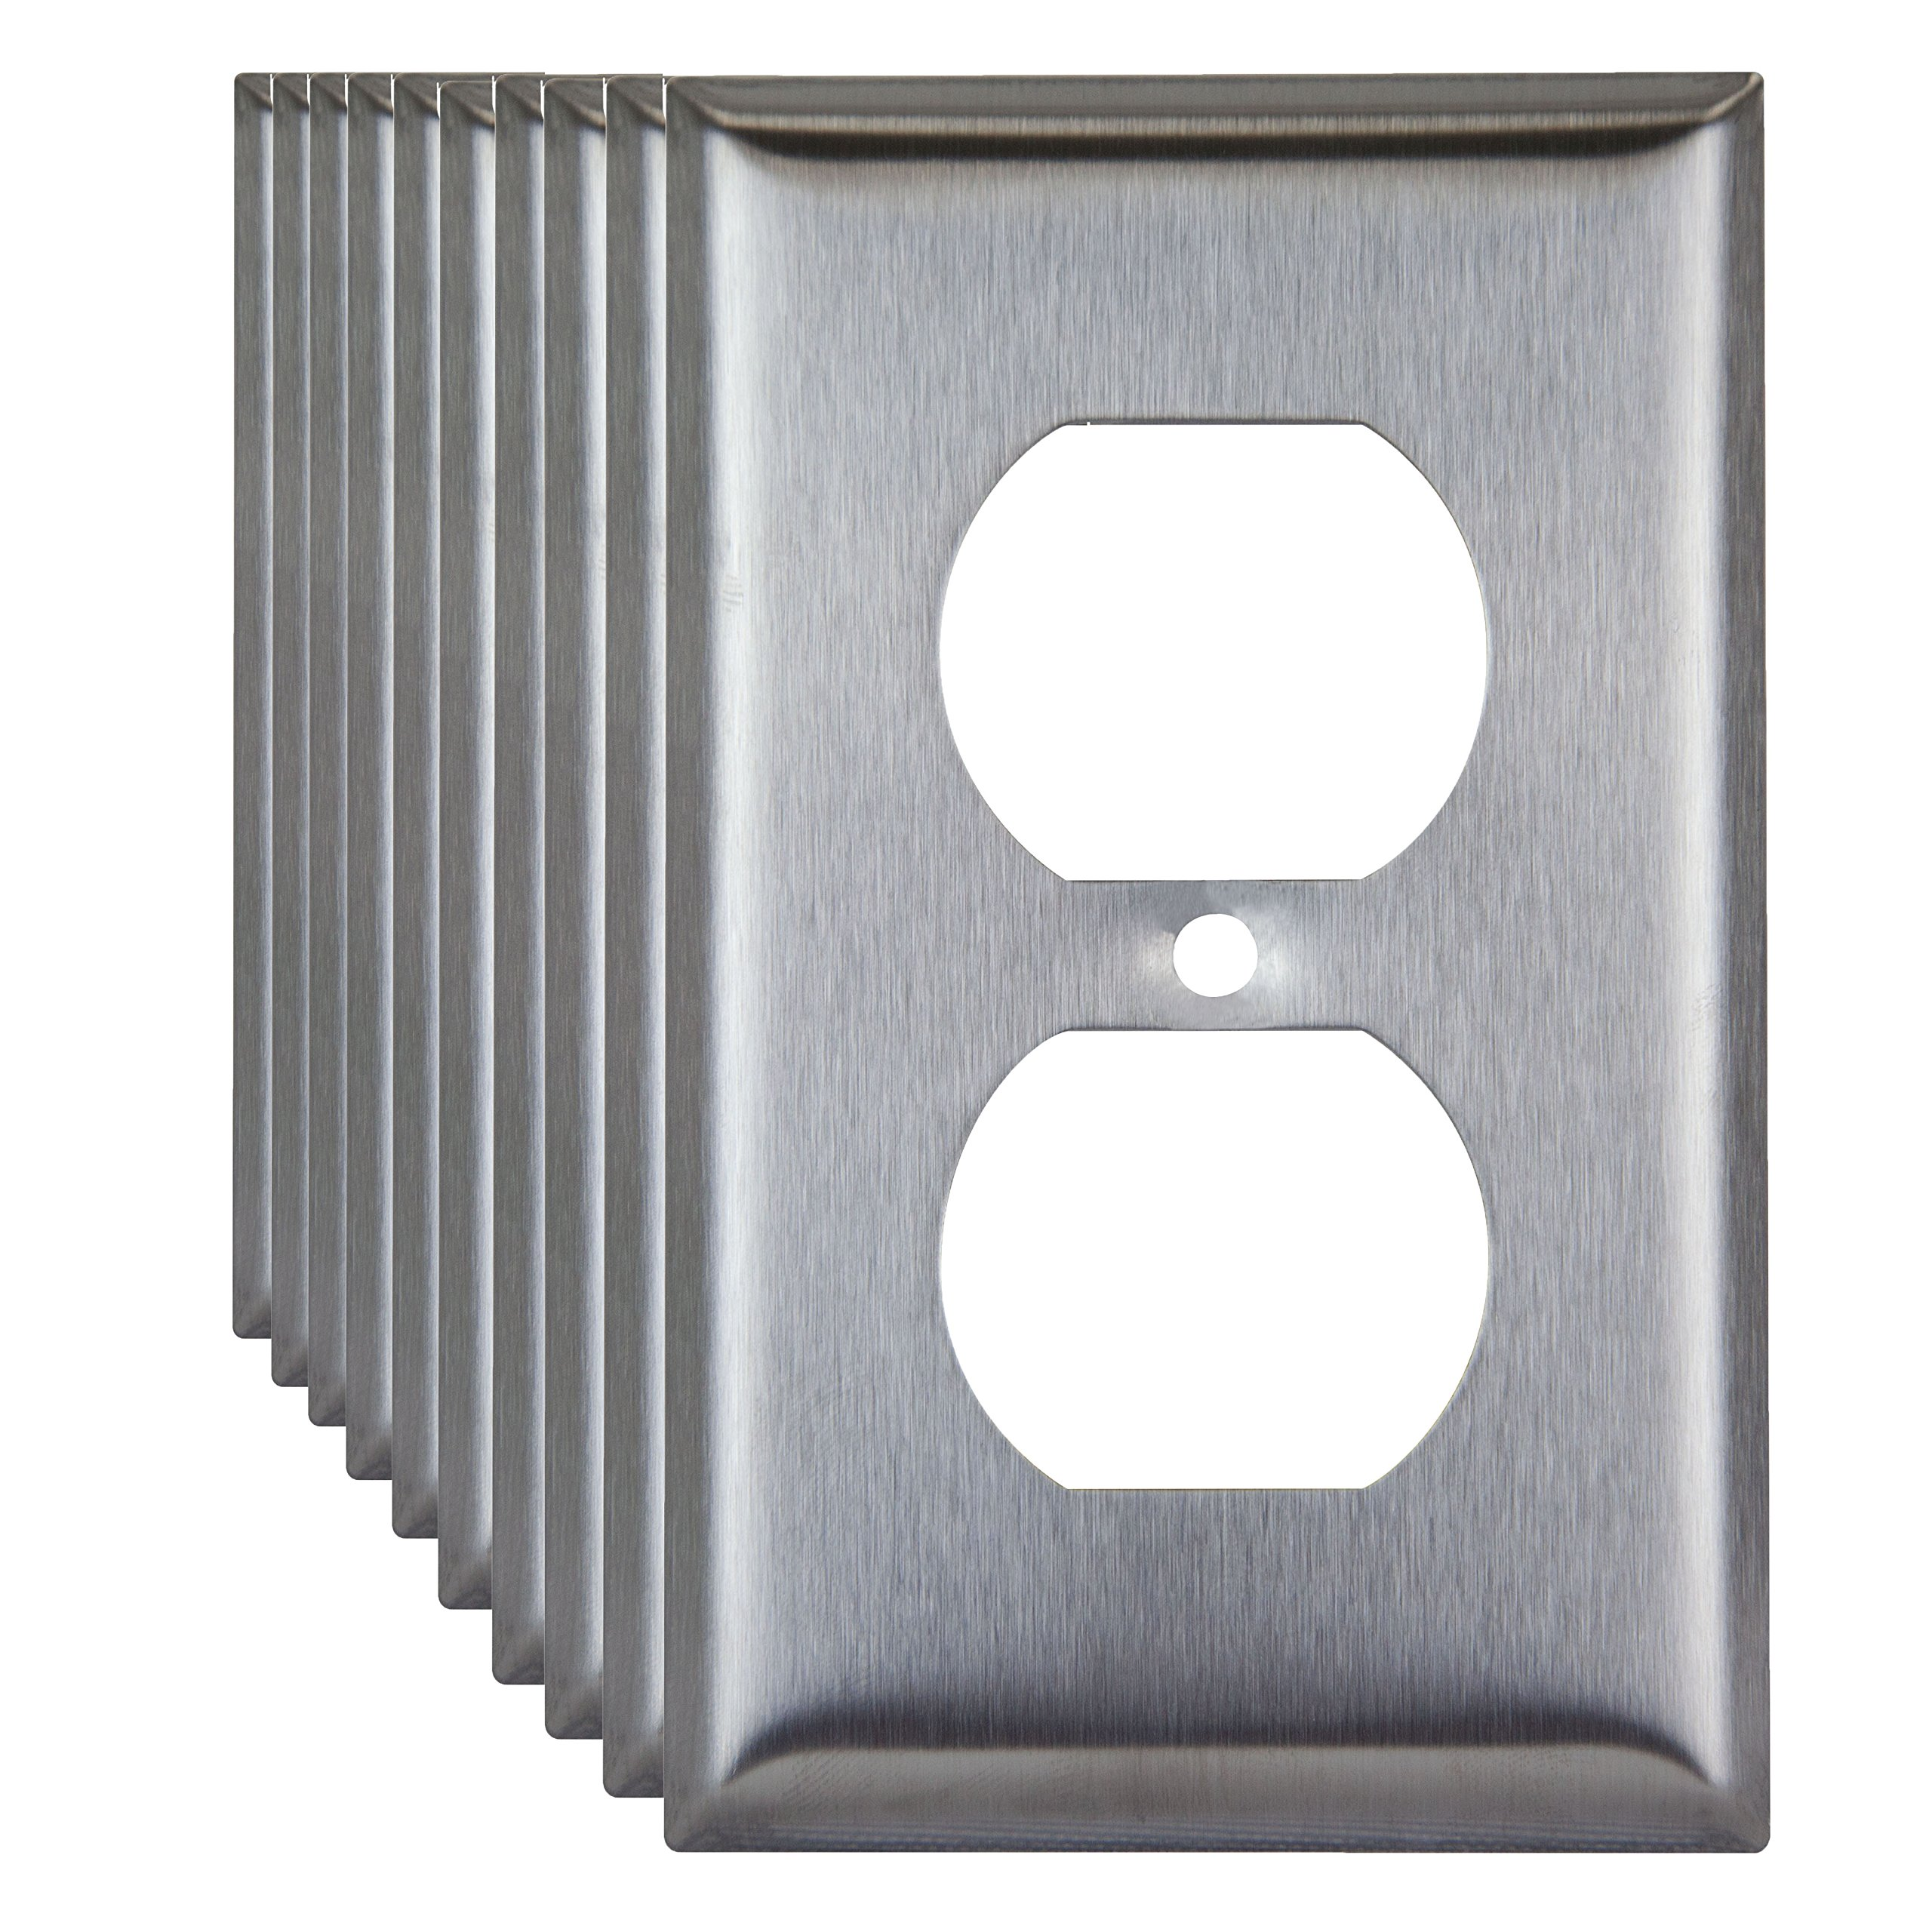 Enerlites 7721-10PCS Duplex Outlet Stainless Steel Wall Plate 1-Gang, Standard Size, 430 Grade Metal Plate Alloy Corrosive Resistant Cover for Receptacle Electrical Power Sockets (10 Pack)